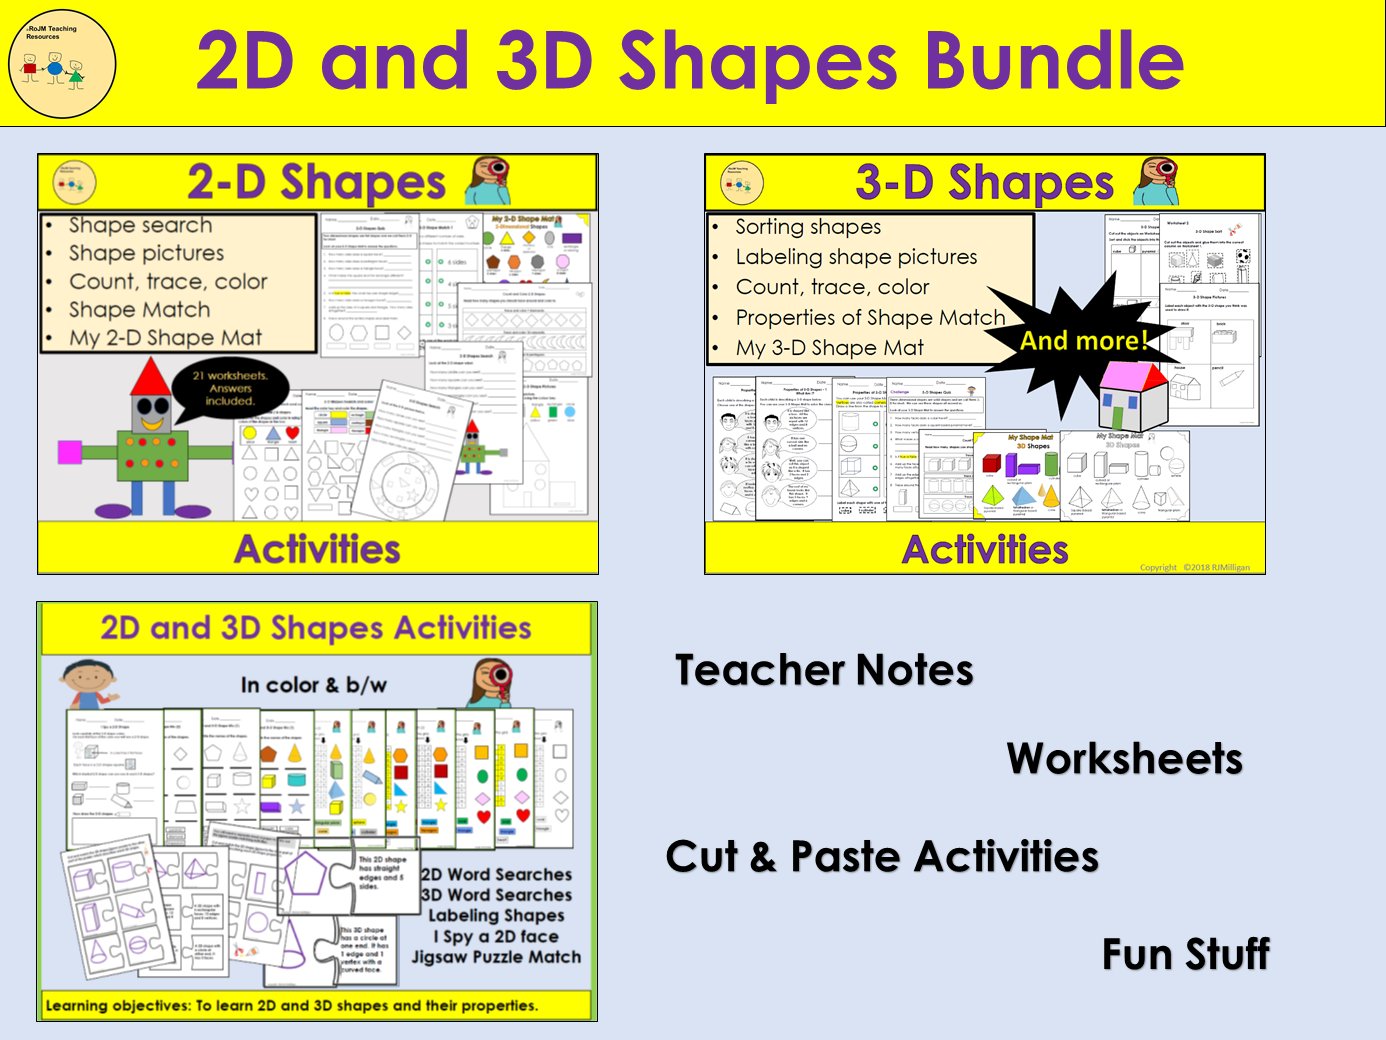 2D and 3D Shapes - Worksheets, Cut/Paste Jigsaw Match Up, Sorting, Word Searches, Quizzes, Labeling BUNDLE